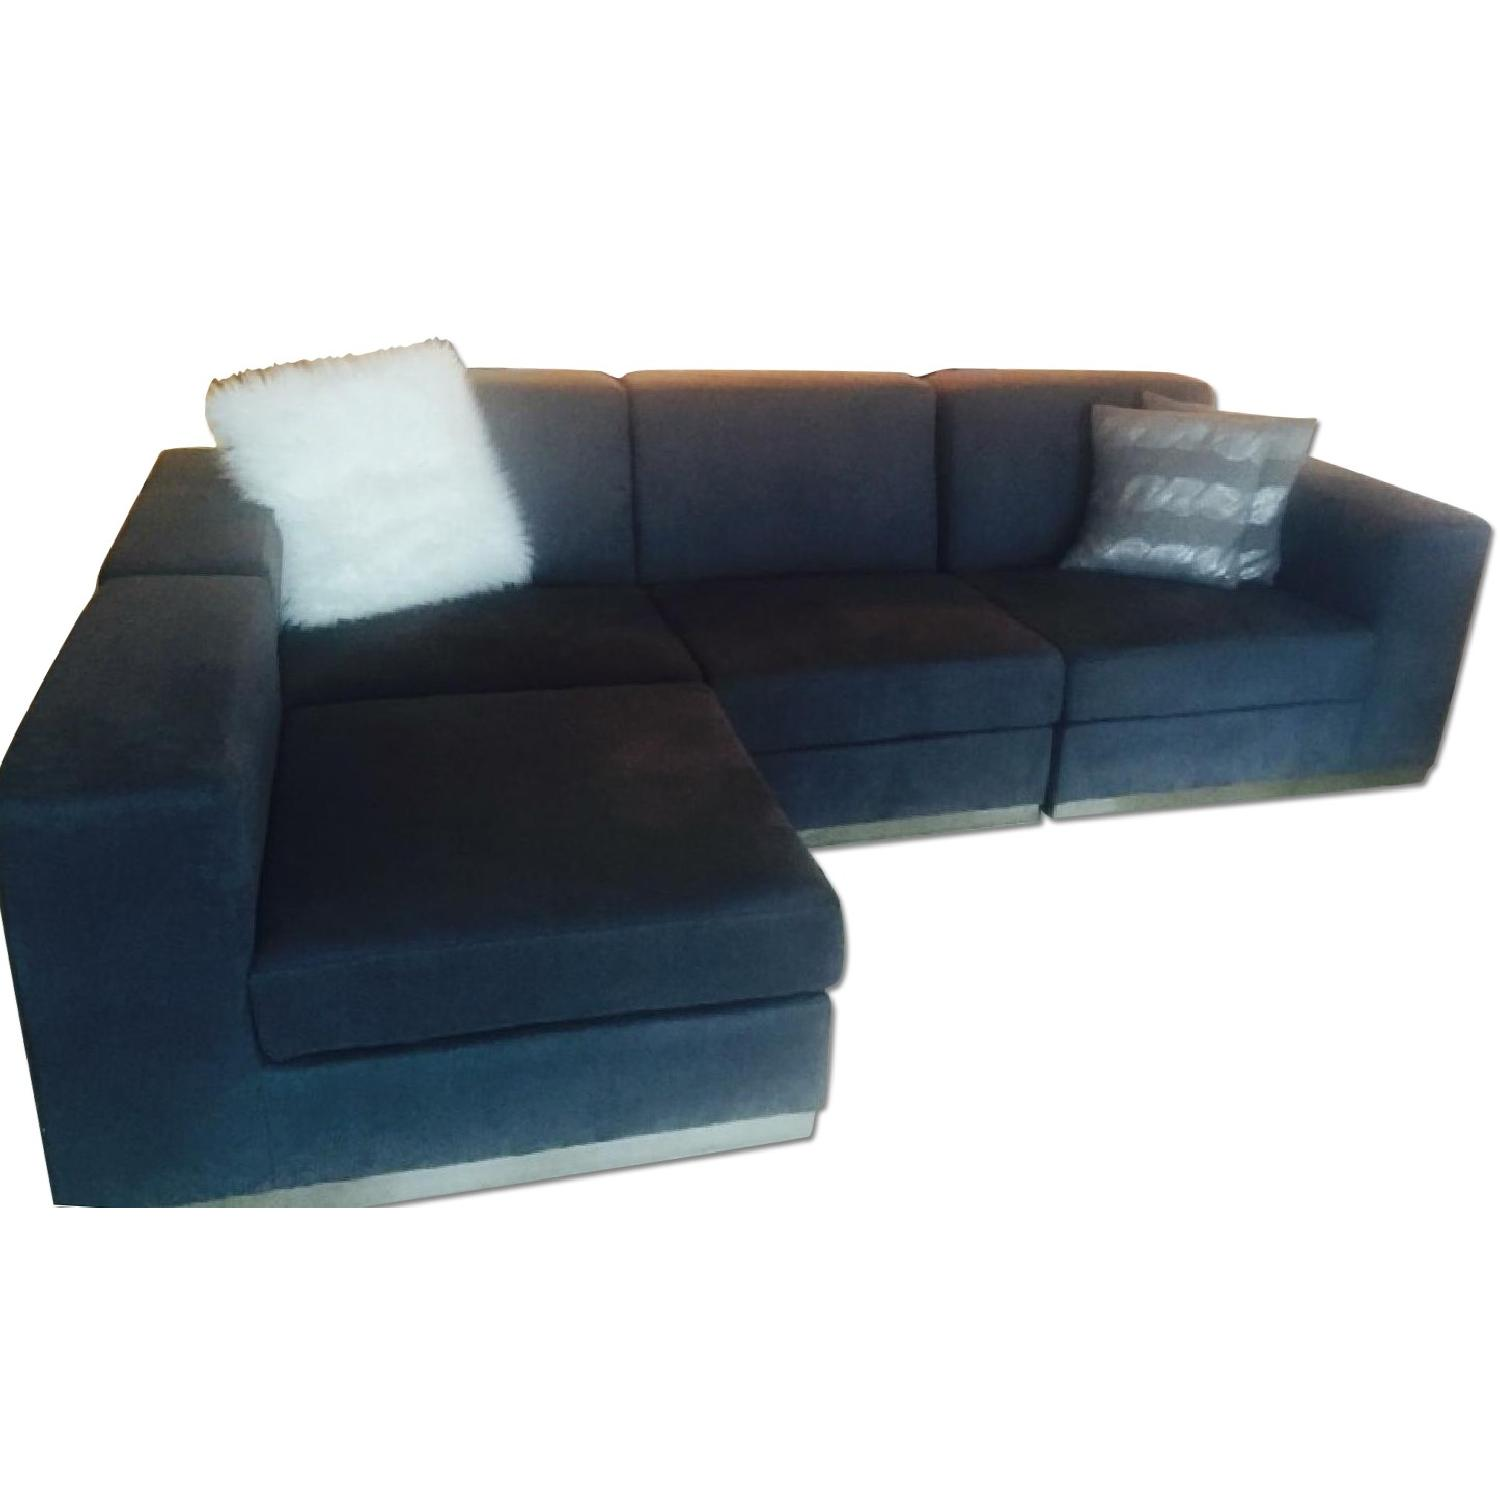 Modani Dark Grey Suede Sectional - image-0